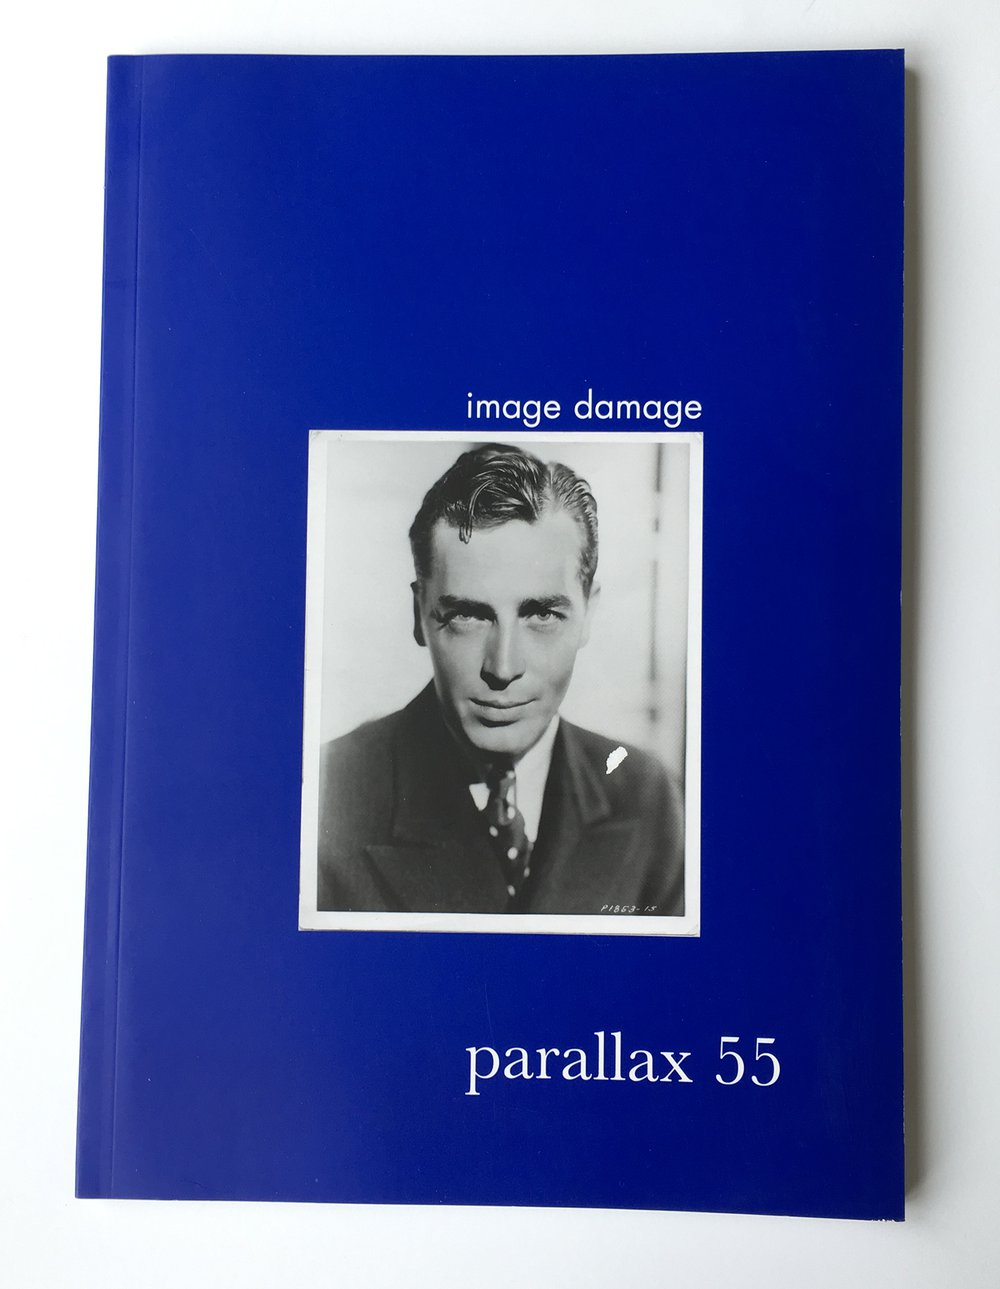 Parallax Journal, 'The Question of the Image'